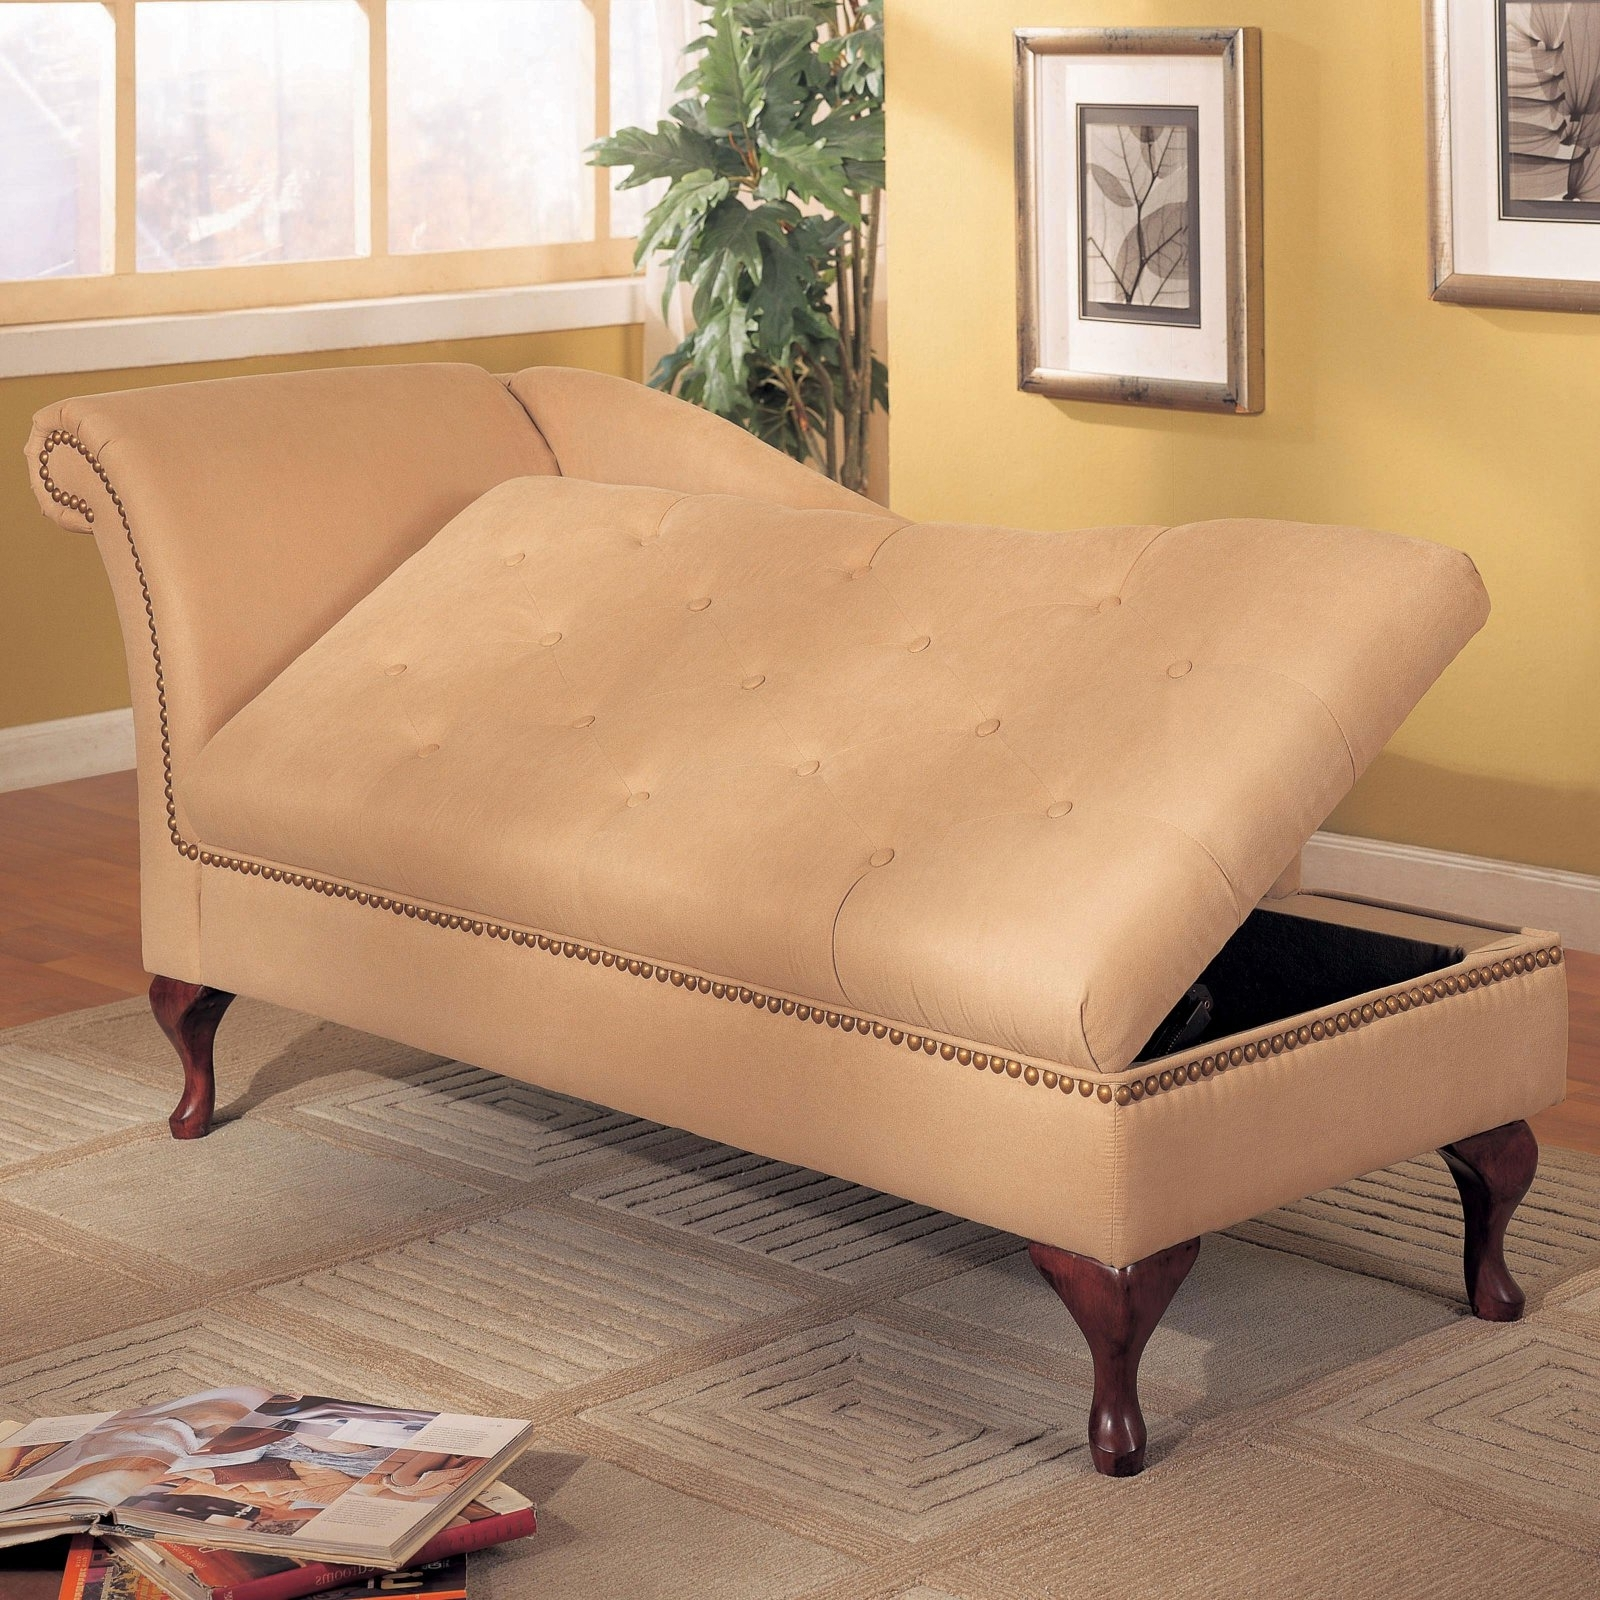 Trendy Indoor Chaise › Indoor Chaise Lounge With Storage Chaise Lounges Inside Storage Chaise Lounges (View 15 of 15)